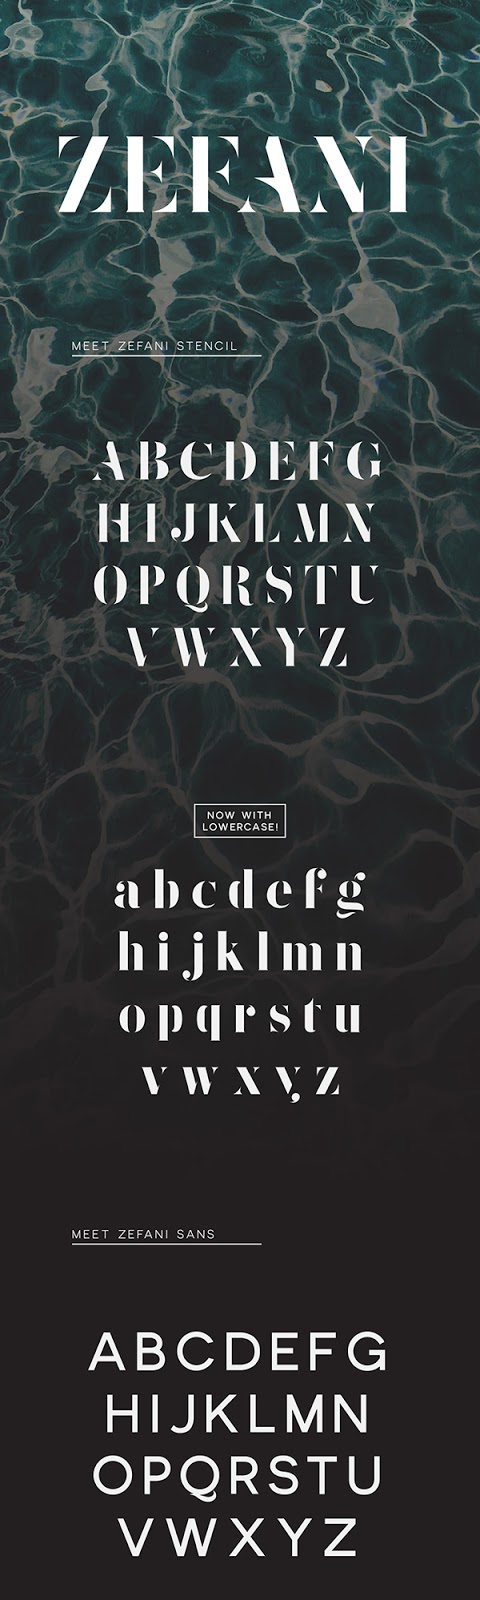 Download Gratis Font Terbaru September 2015 - Zefani Typeface